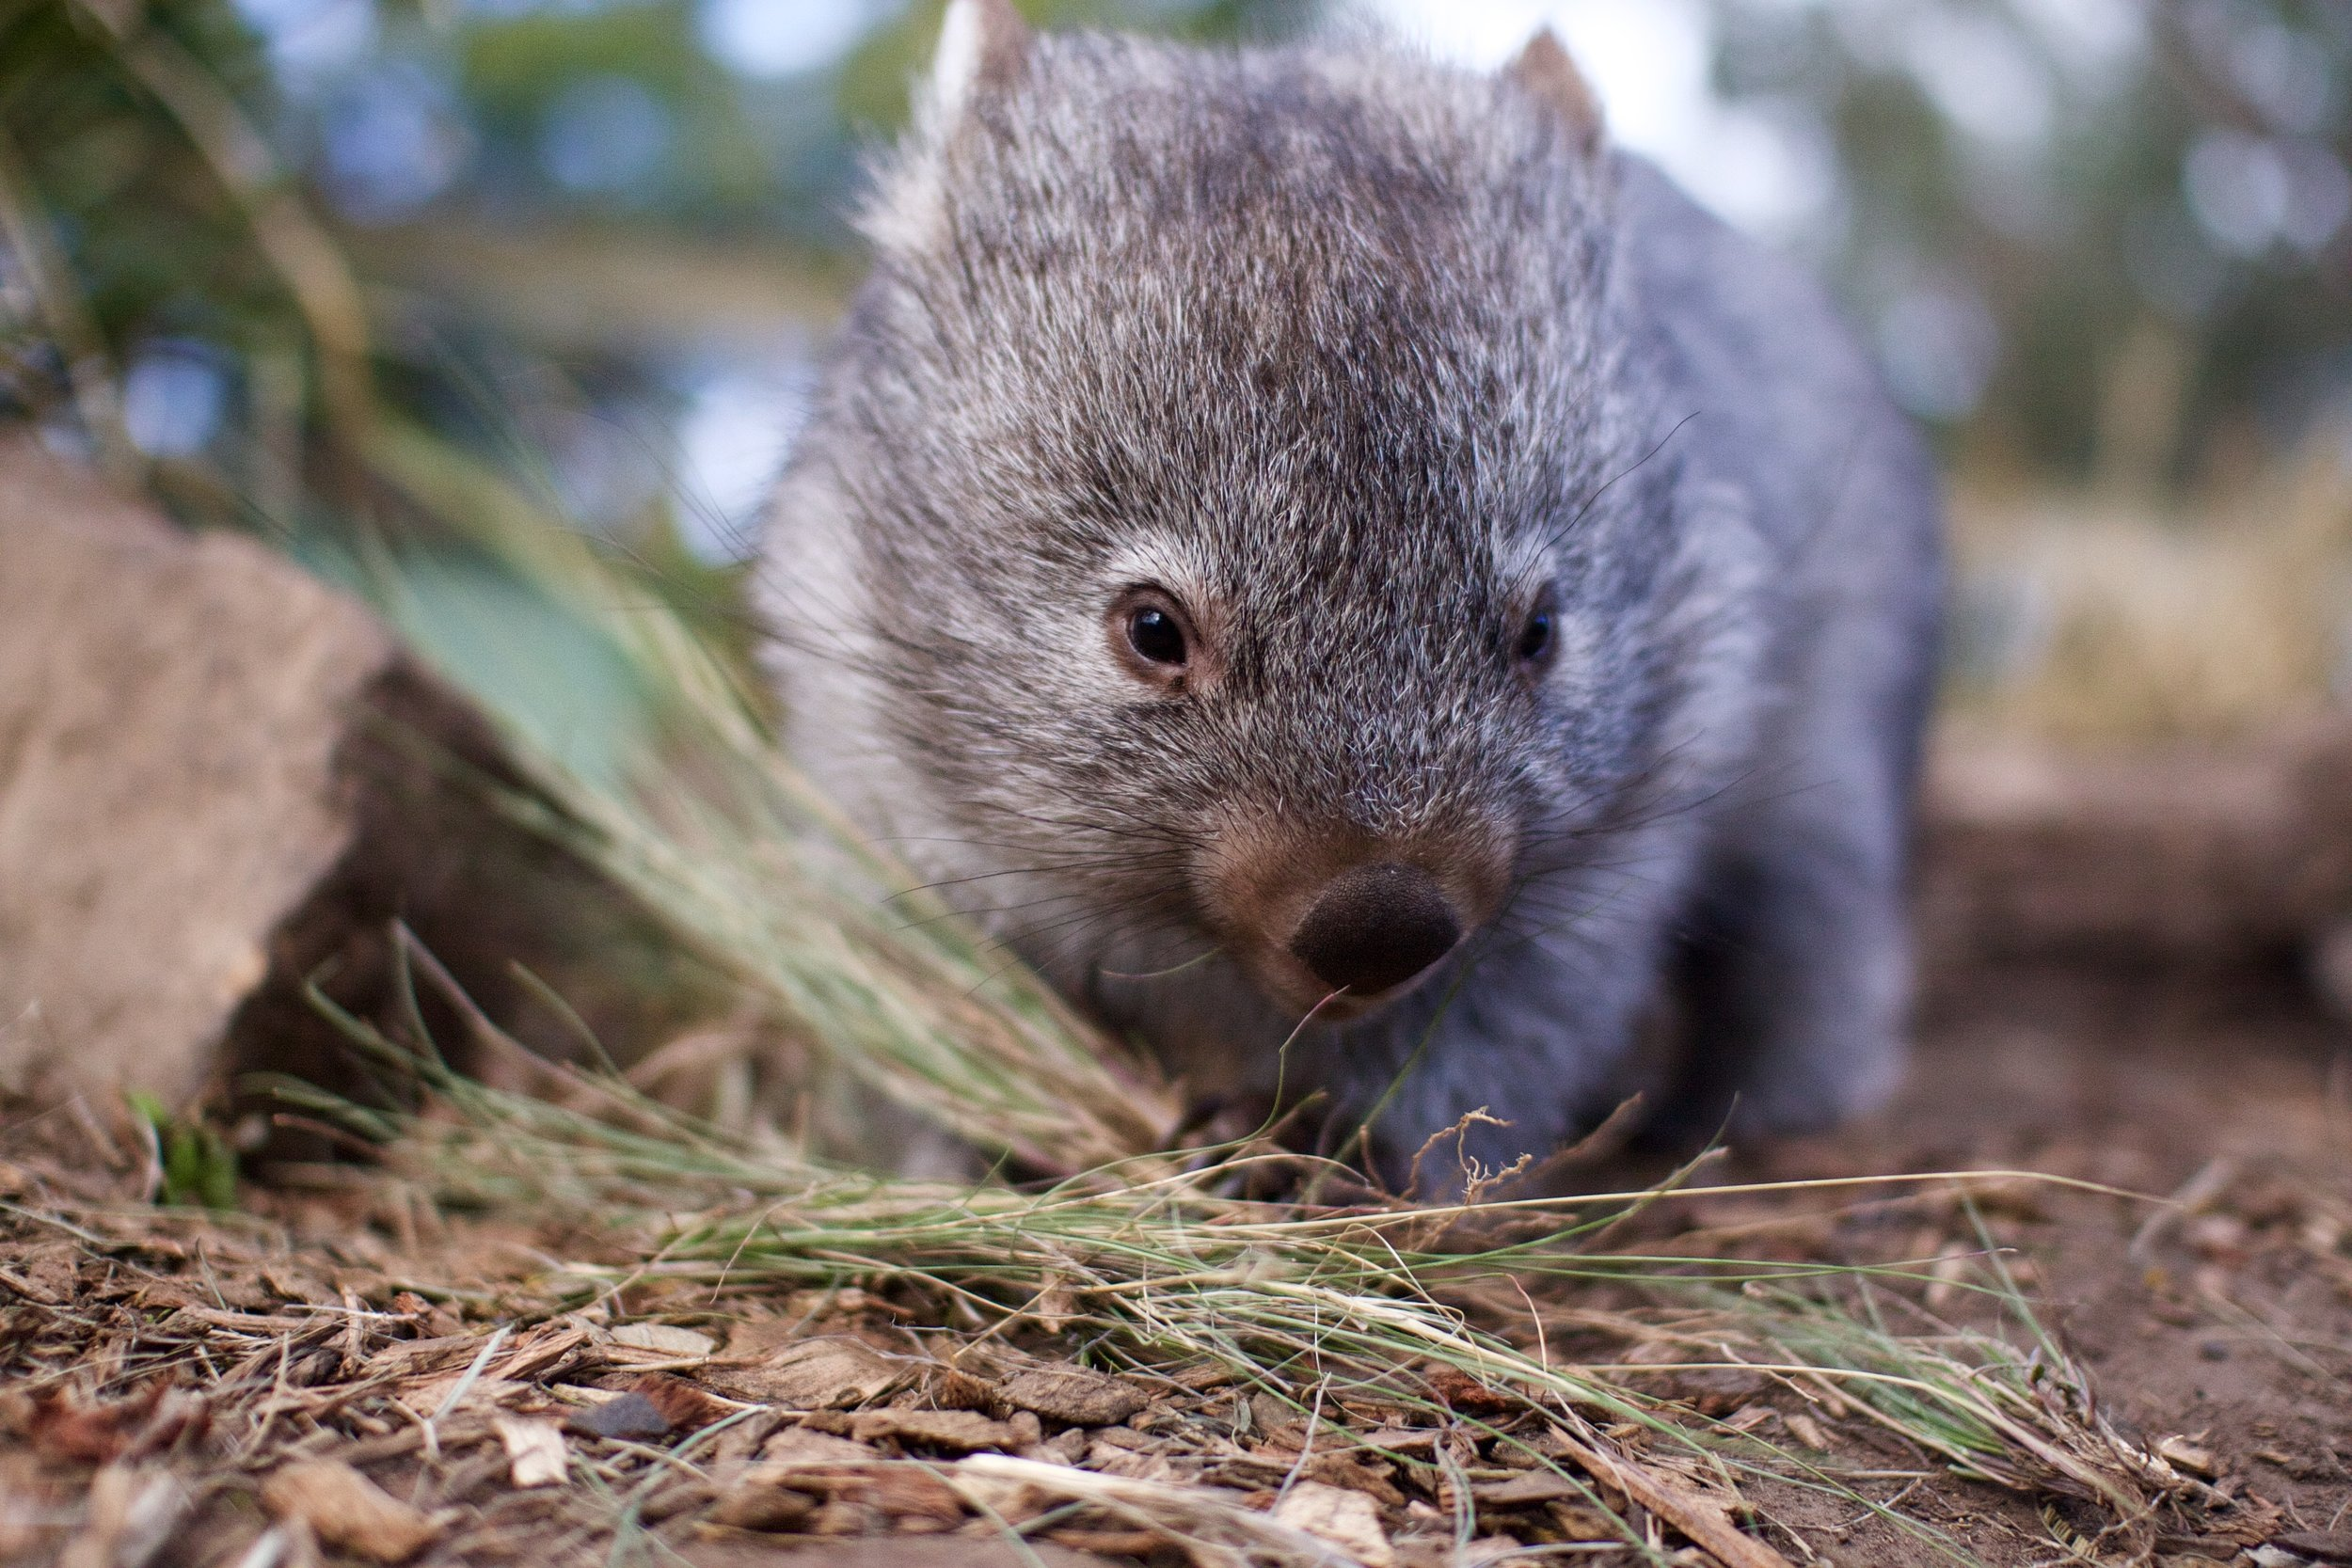 Get up close with a bare-nosed wombat!